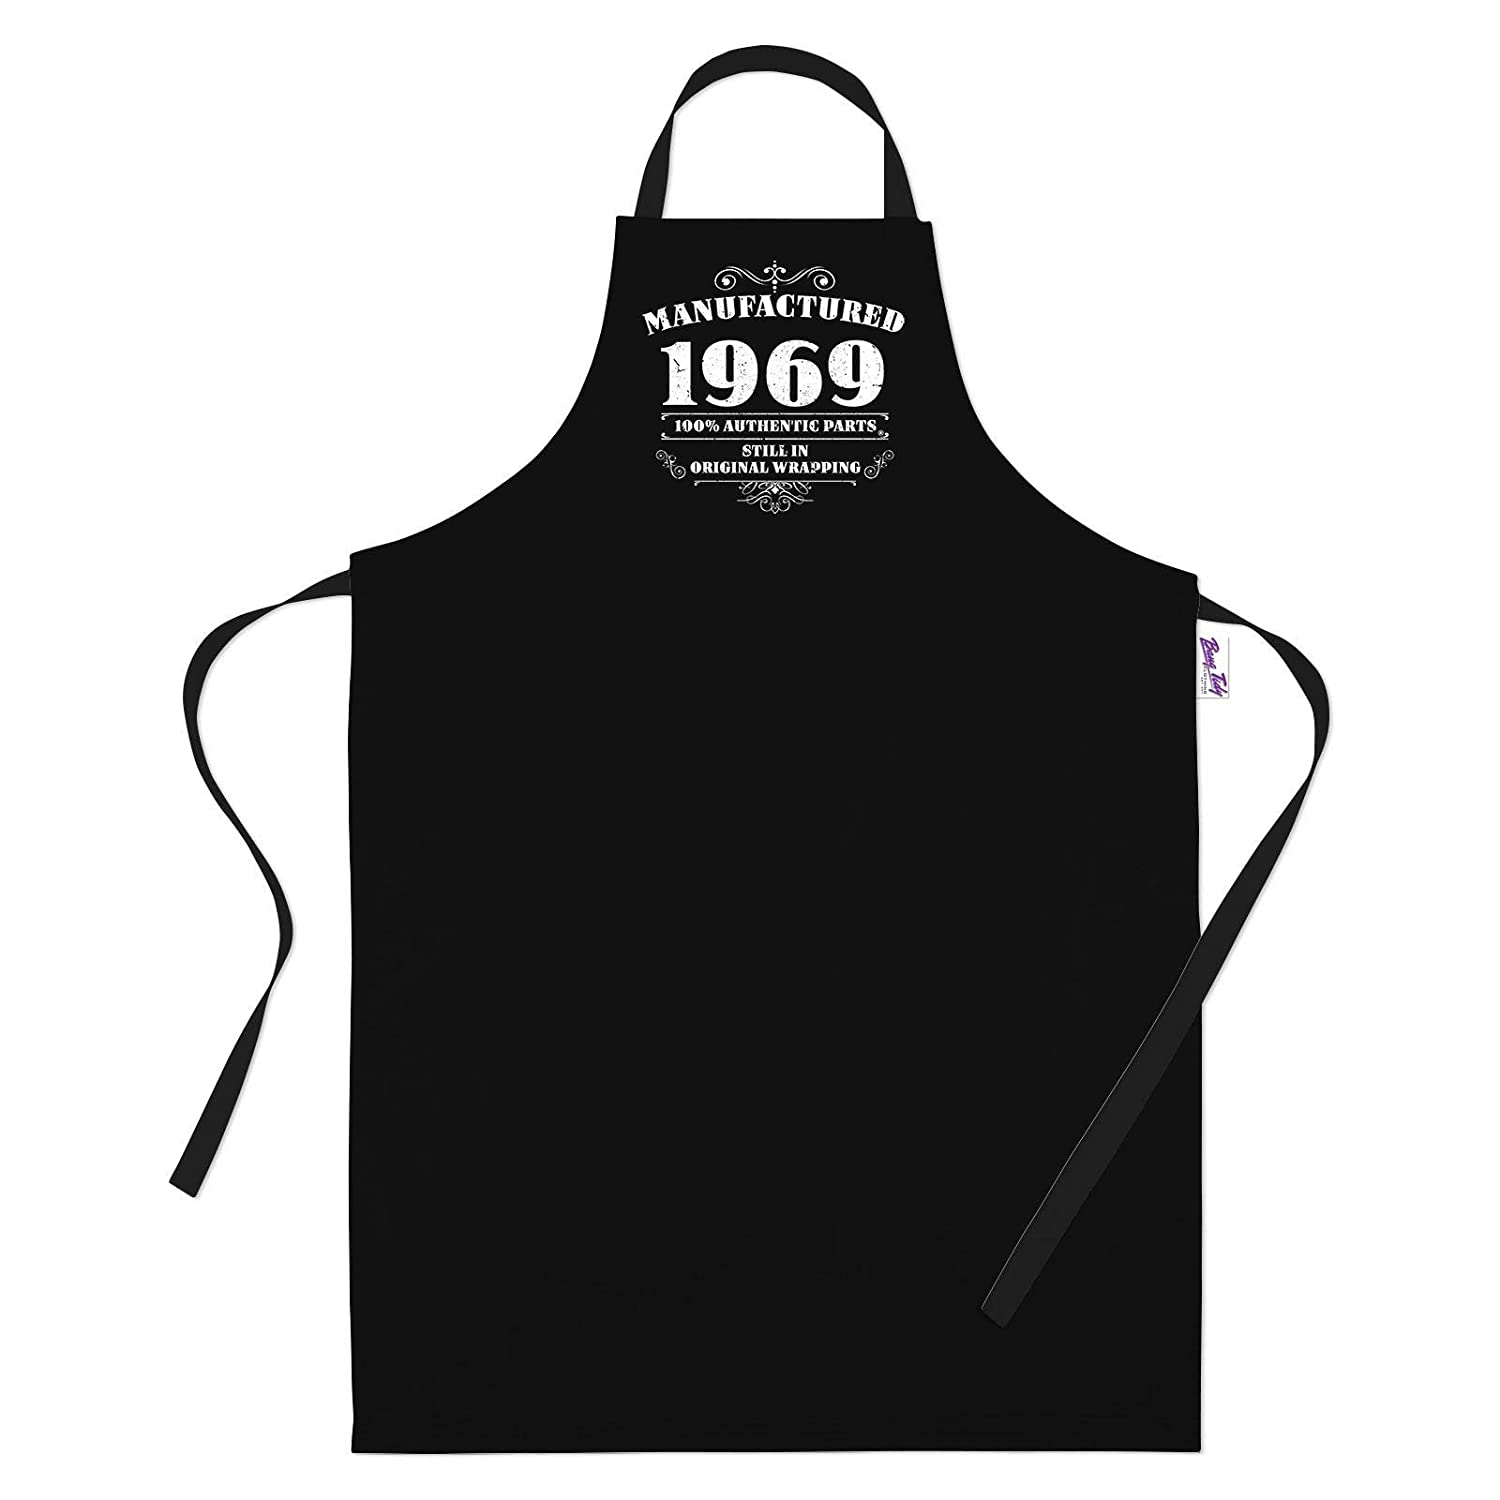 50th Birthday Gifts For Men Him Dad Husband BBQ Cooking Apron Manufactured 1969 Amazoncouk Kitchen Home